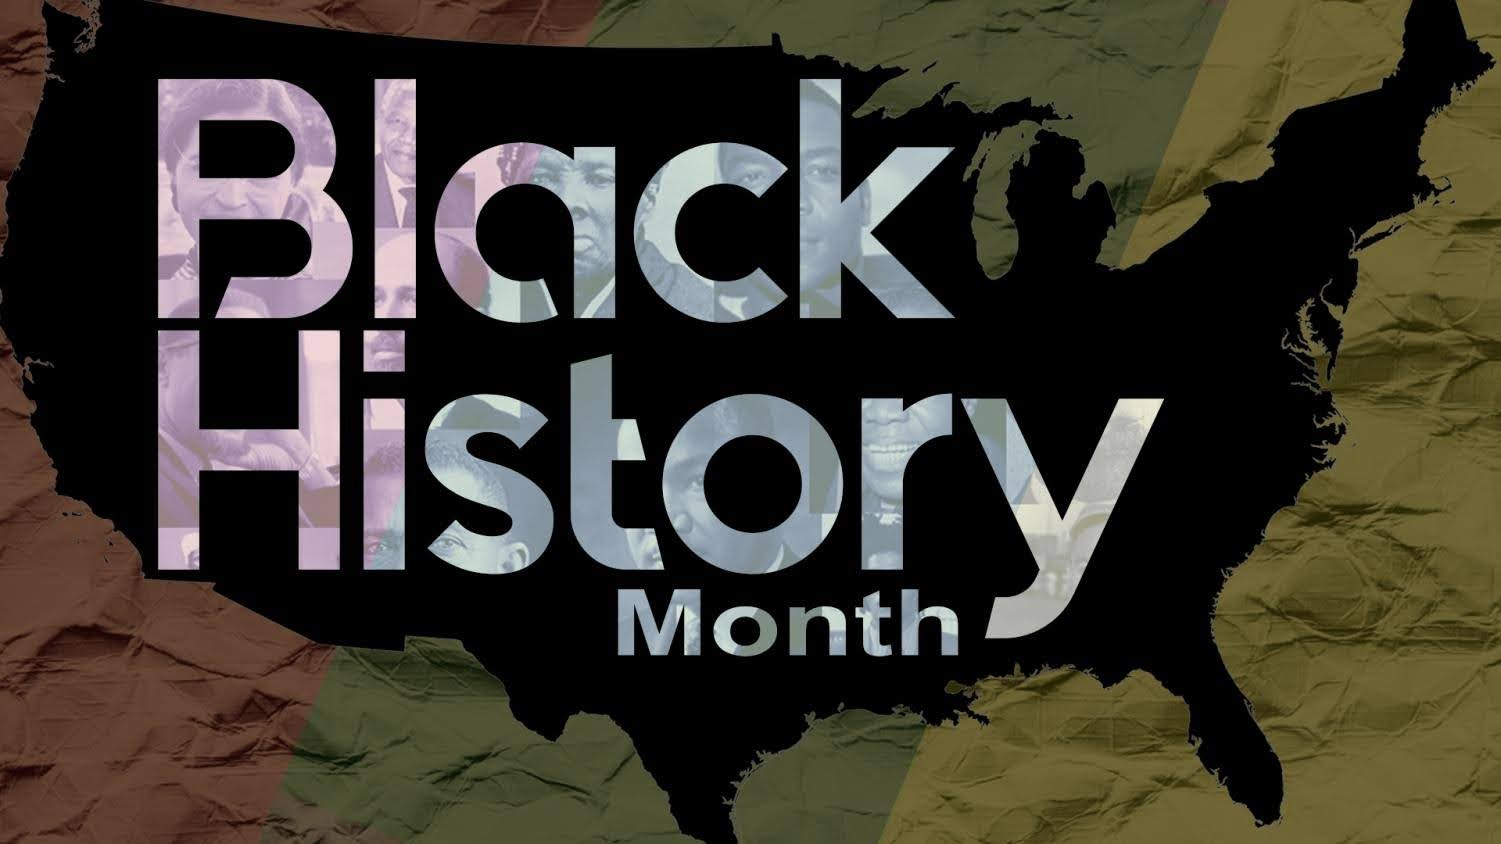 The words Black History Month written over a blacked out silhouette of the United States of America.